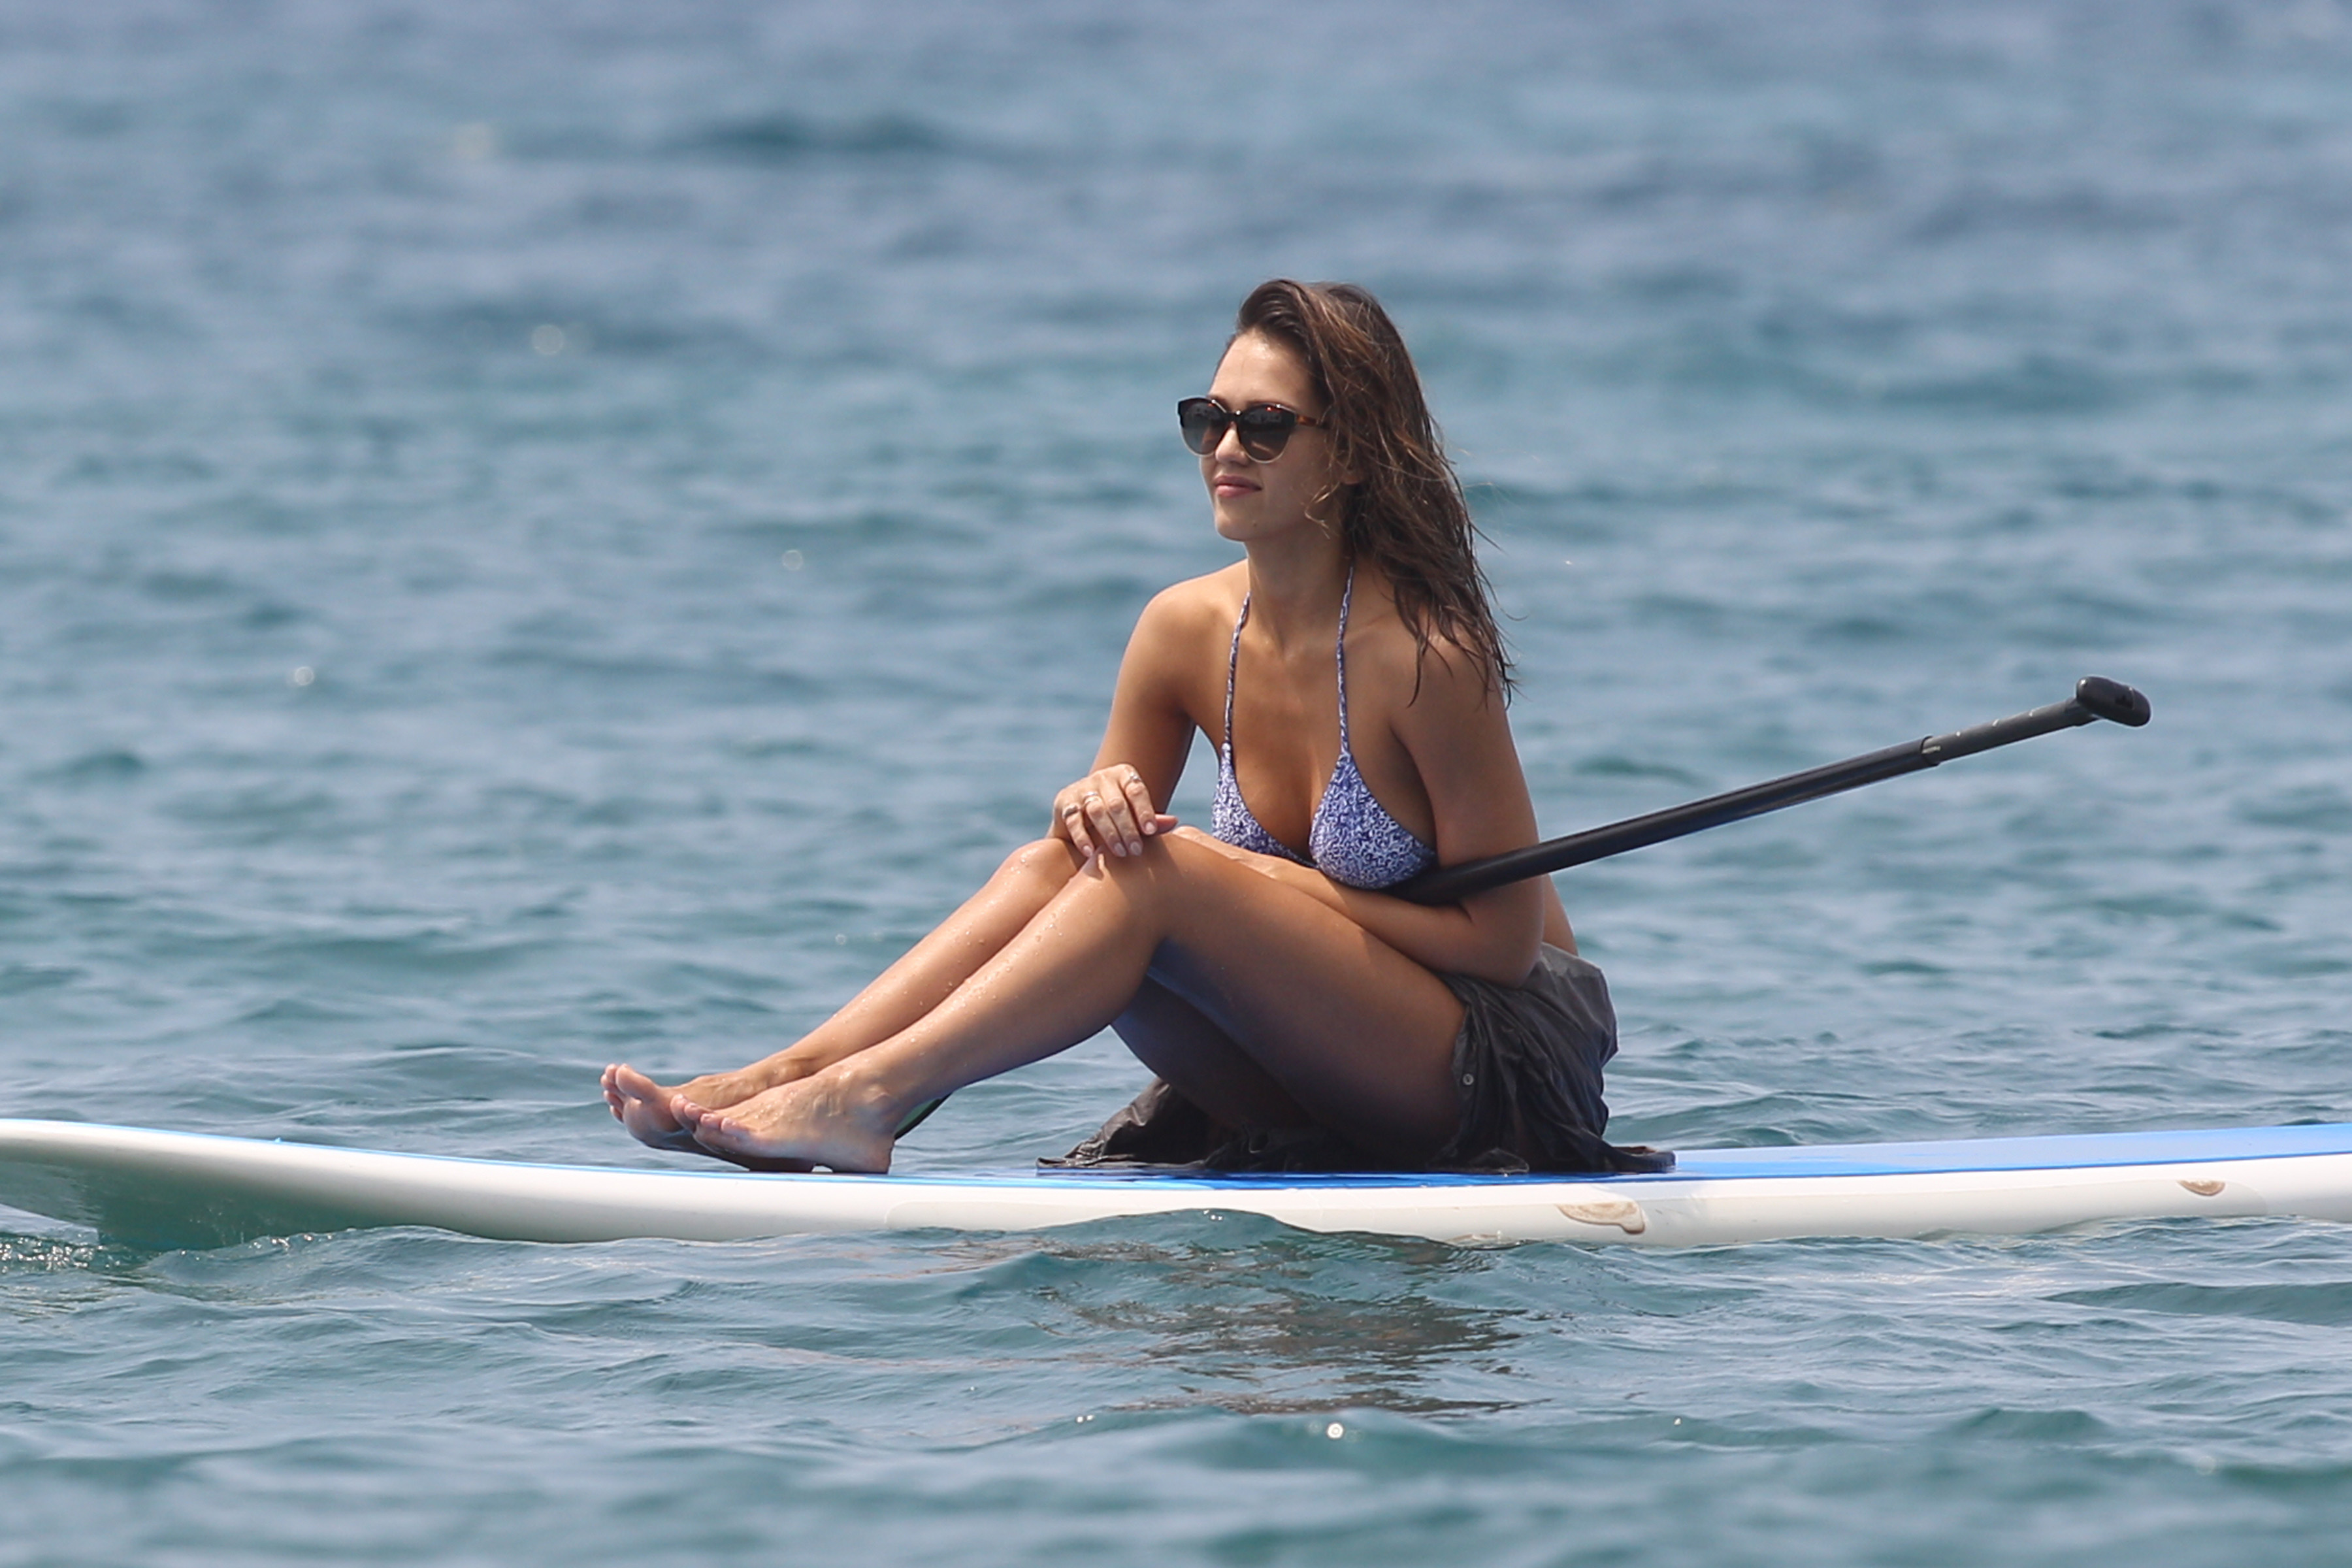 jessica-alba-bikini-photo-gallery-spanish-young-girls-pictures